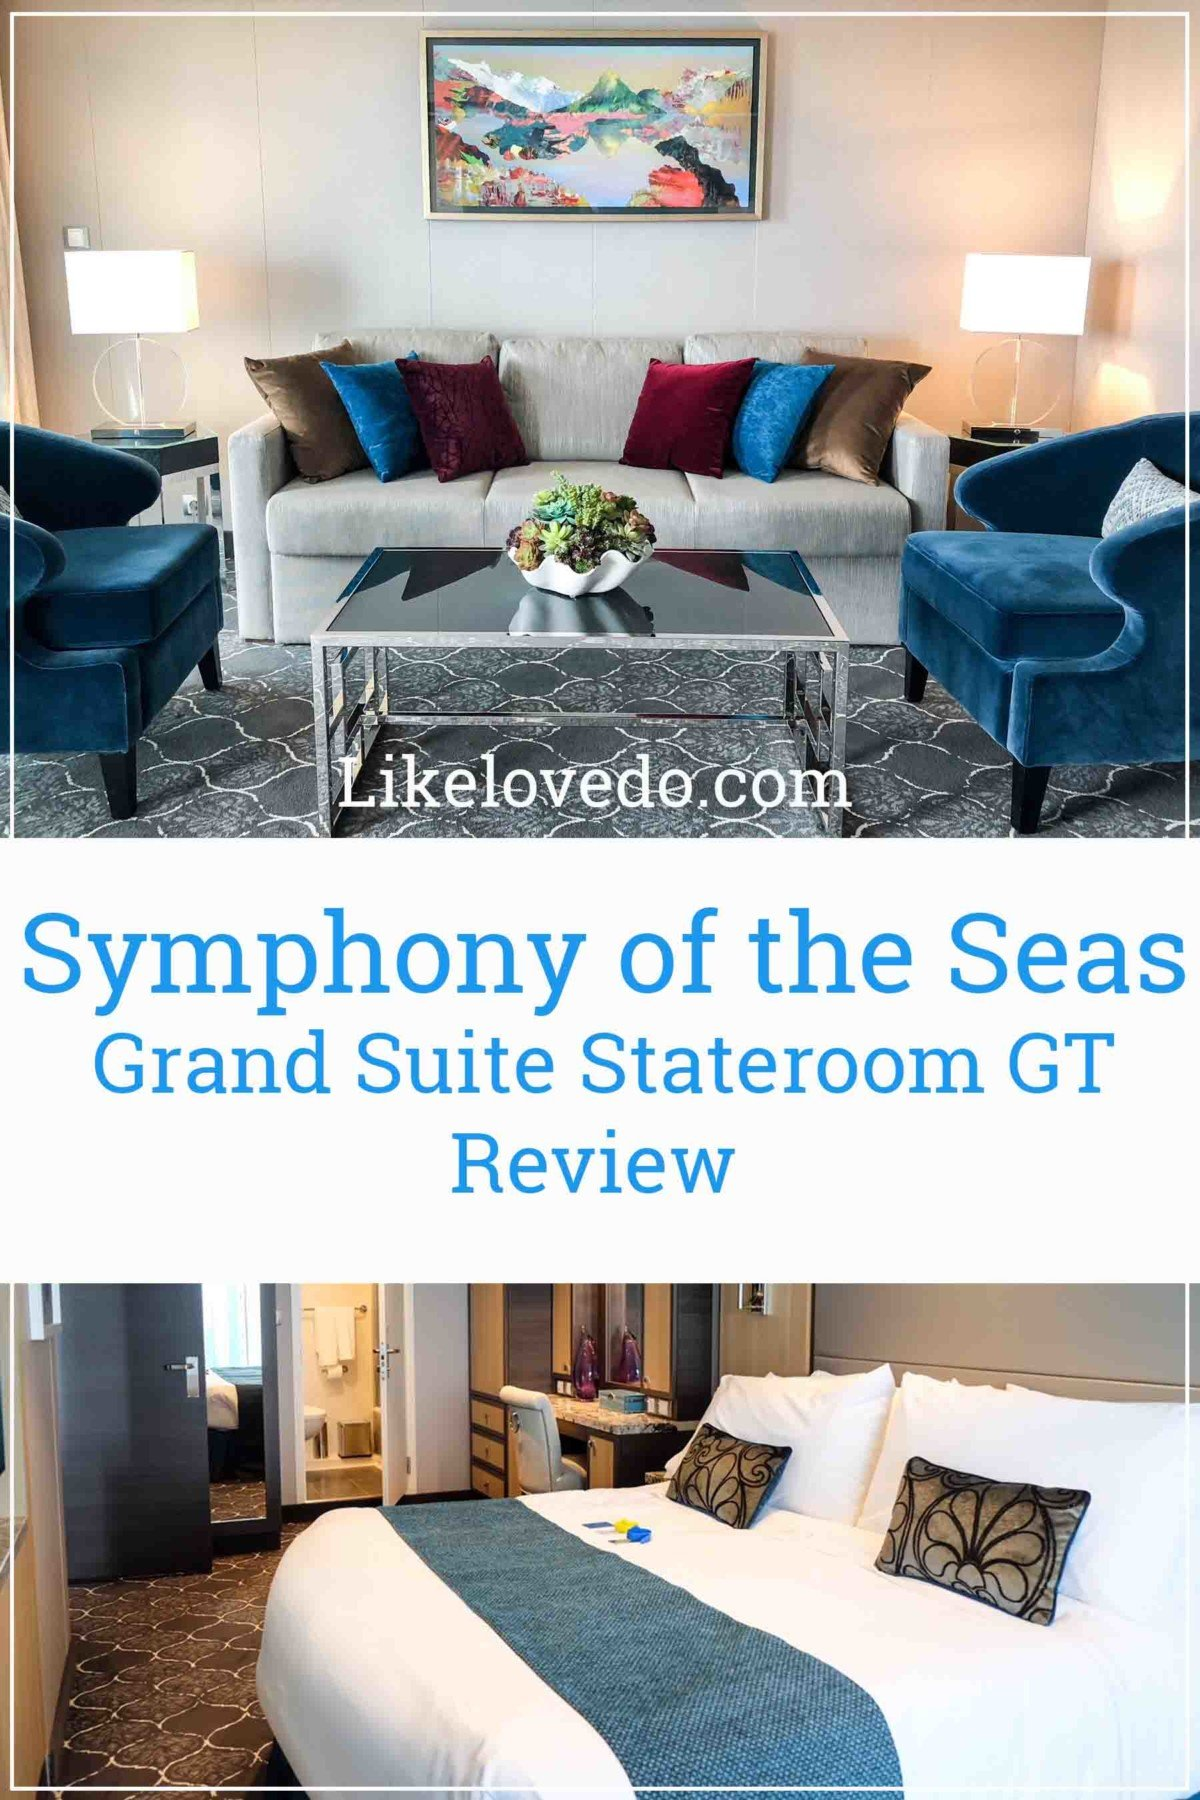 Symphony of the seas Grand suite stateroom